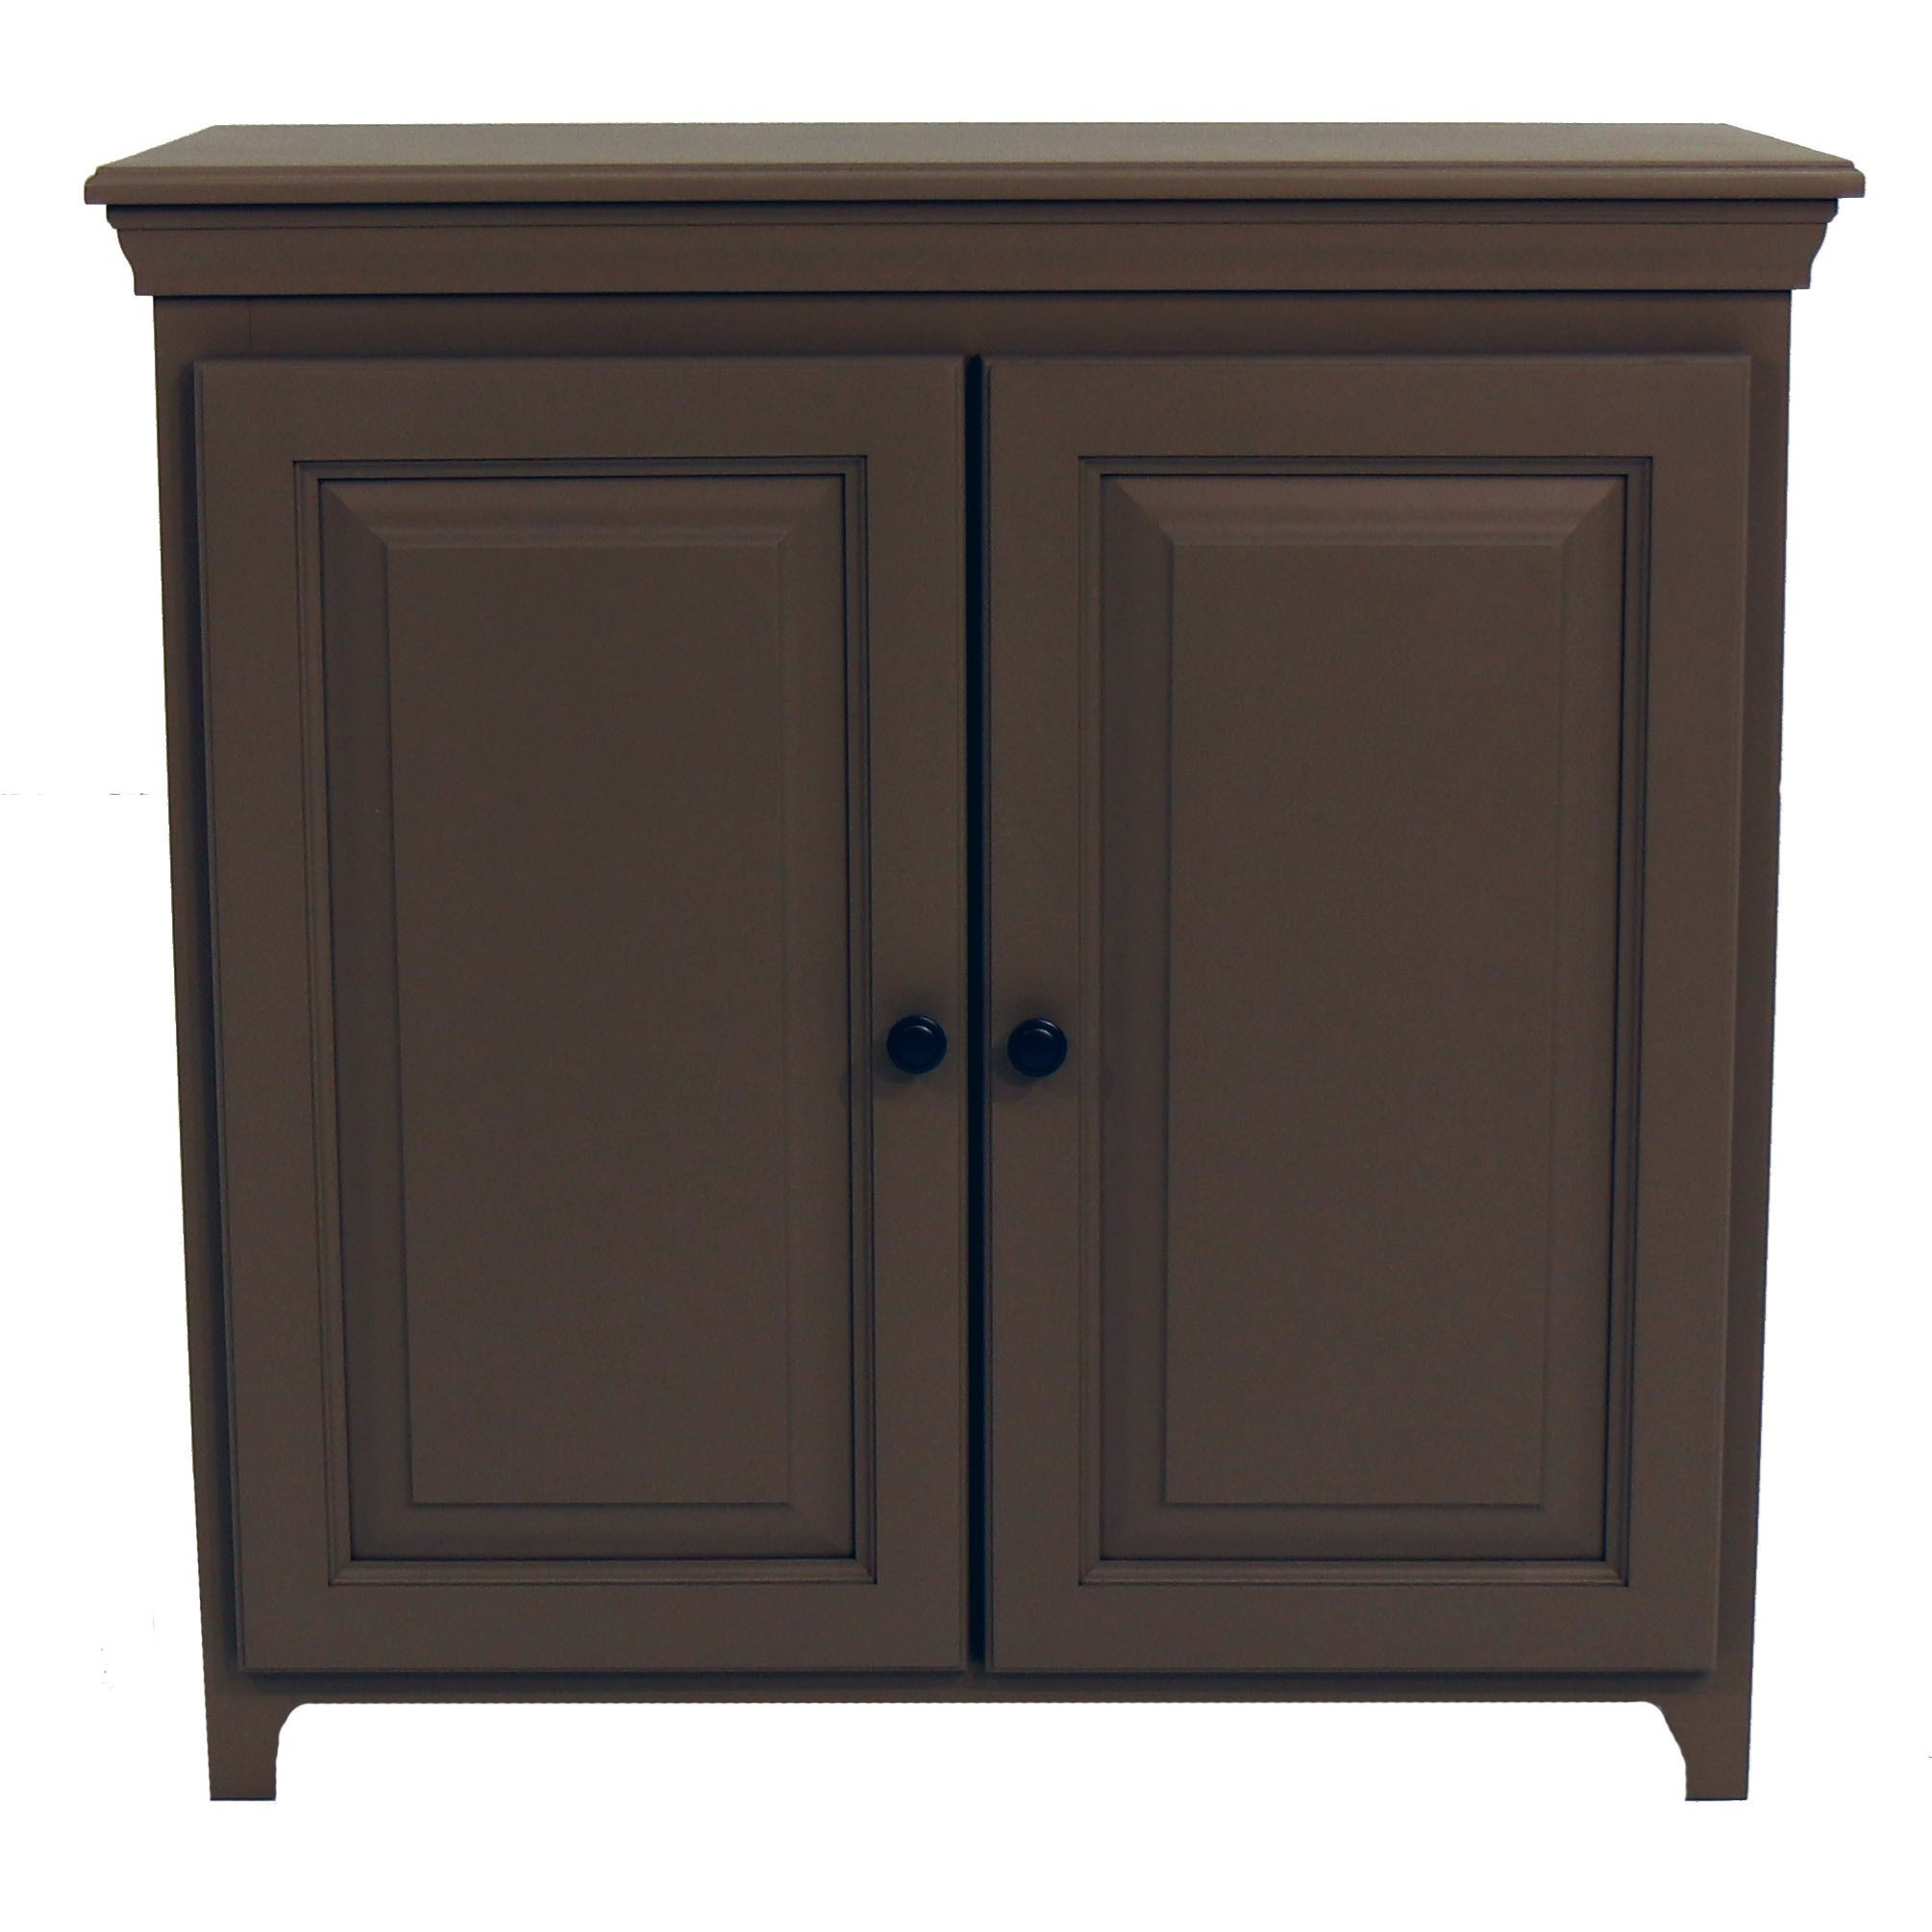 Pantries and Cabinets 2 Door Cabinet by Archbold Furniture at Johnny Janosik